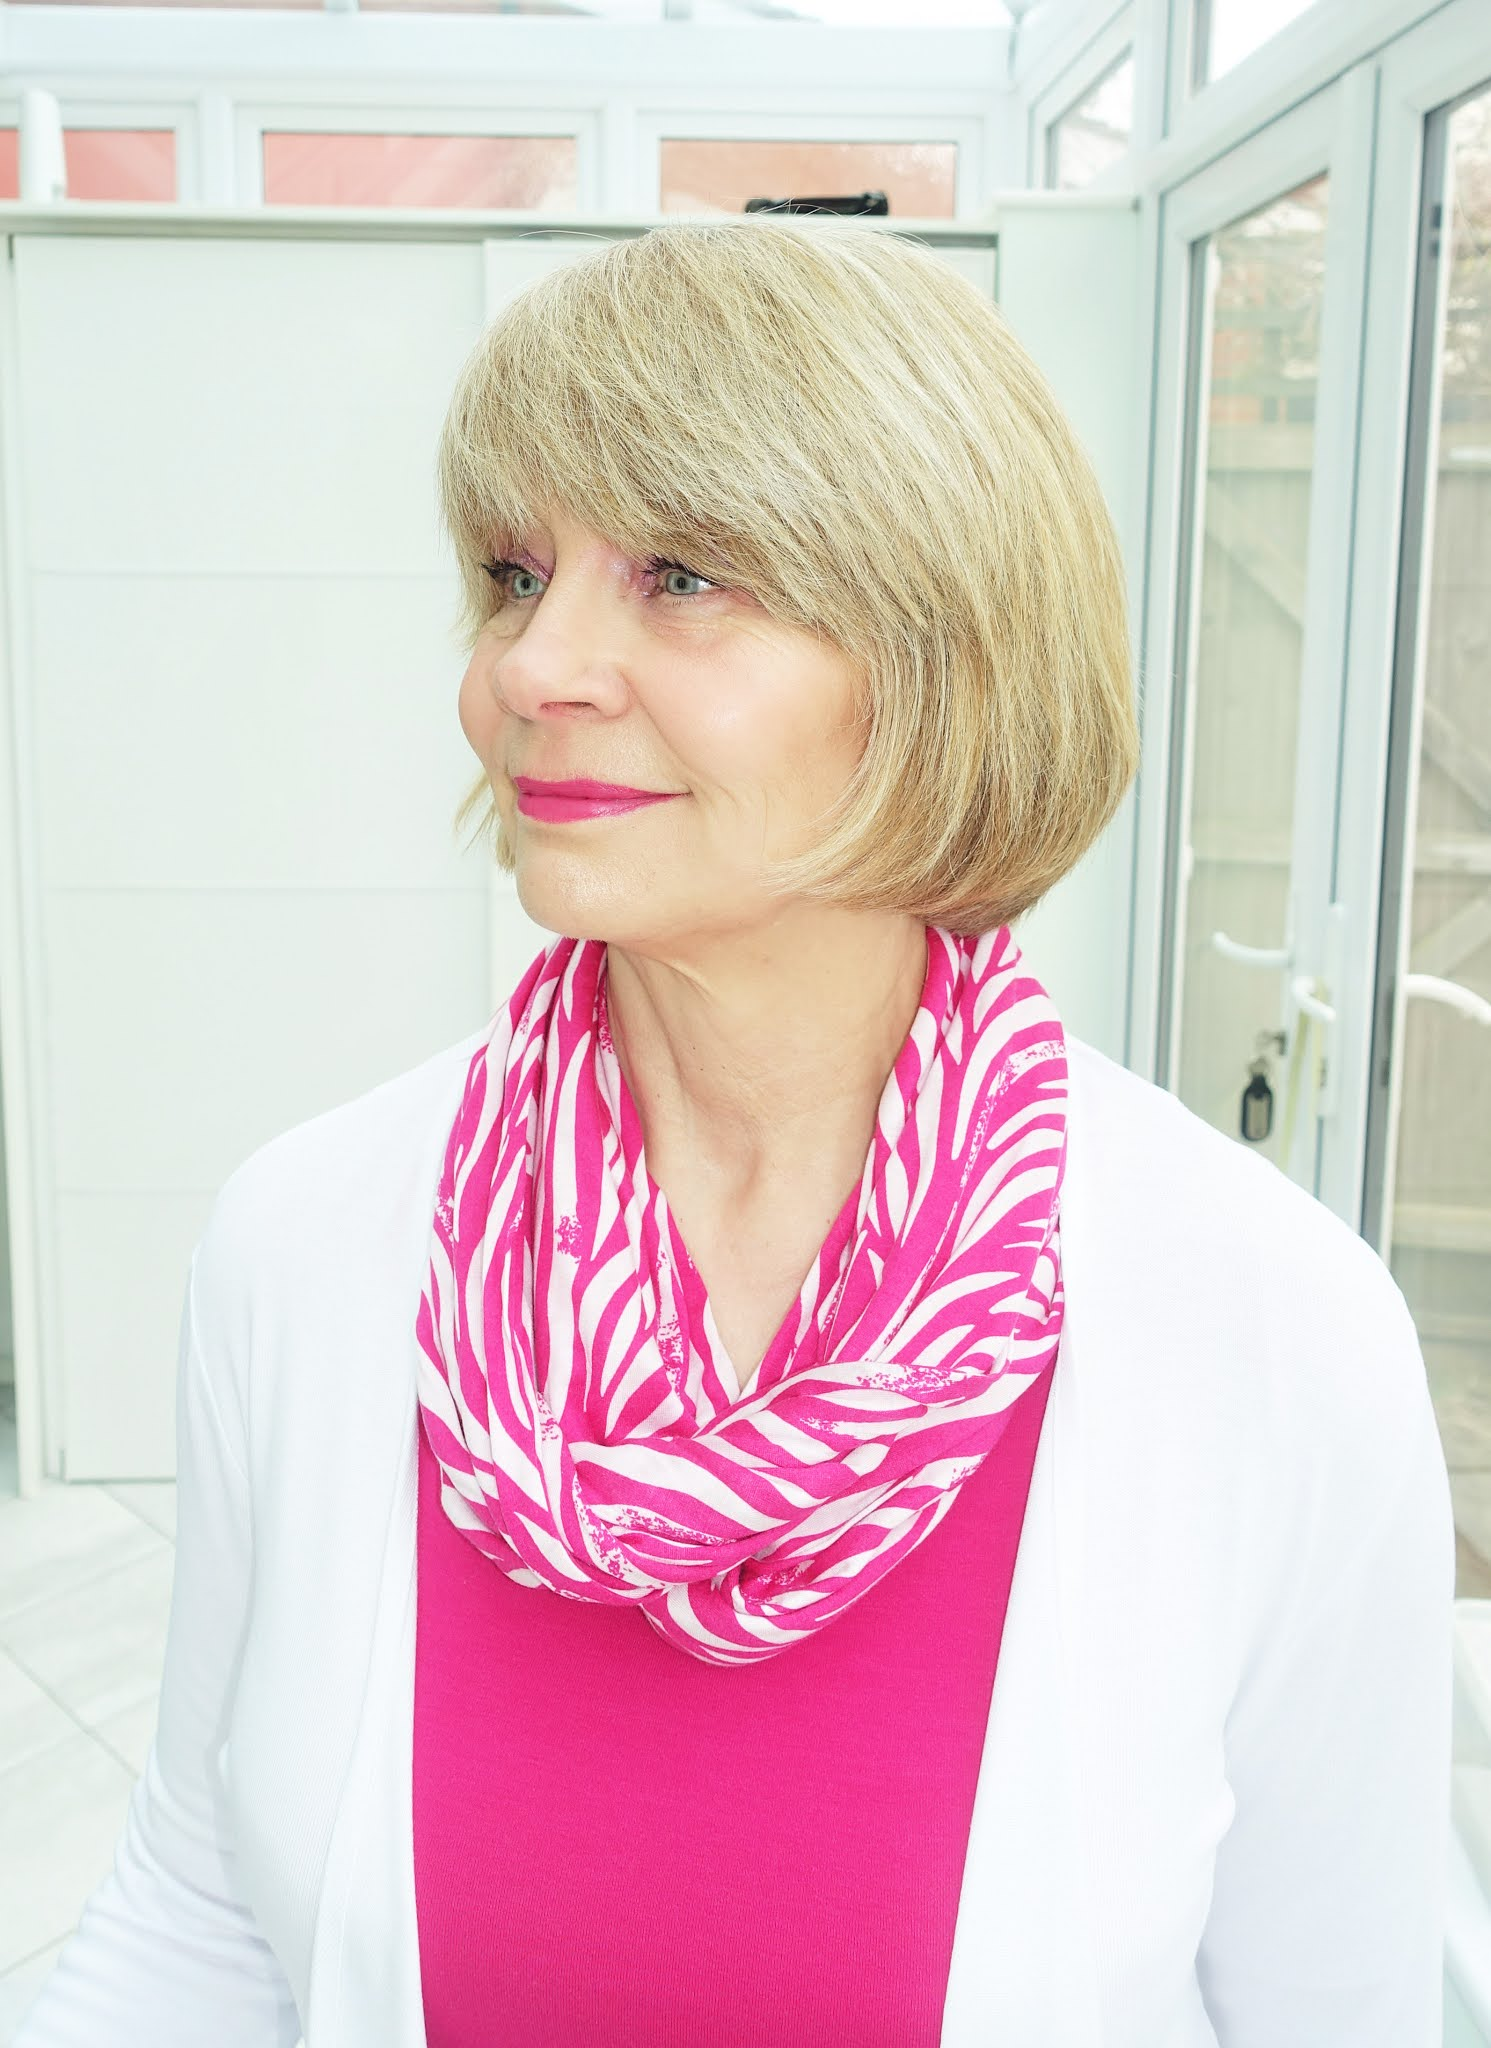 Over 50s blogger Gail Hanlon in bright pink and white